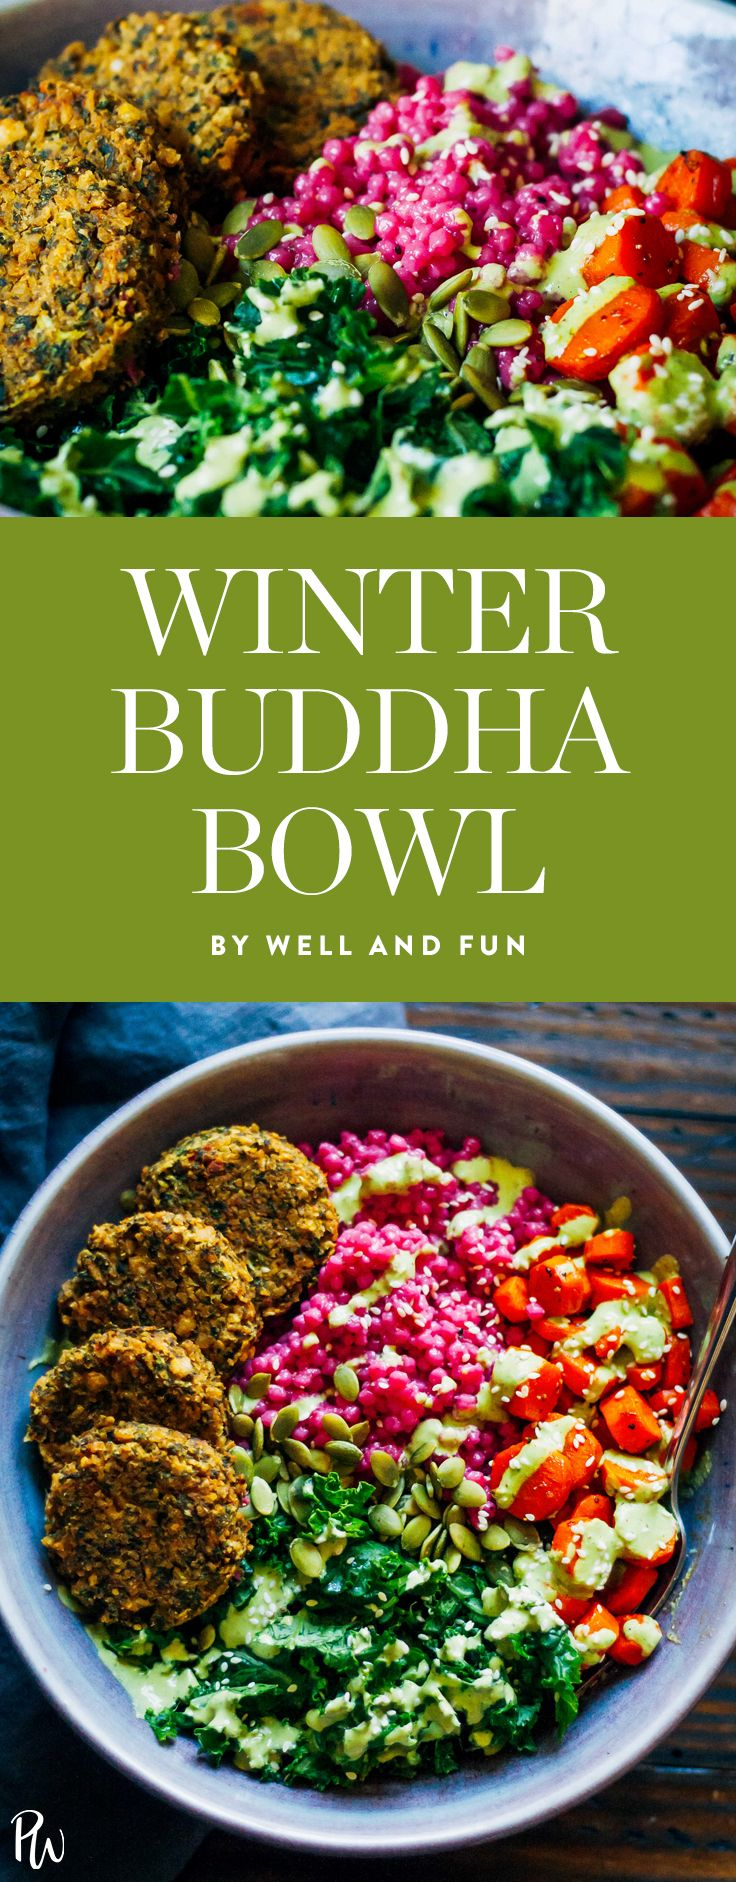 Winter Buddha Bowl by Well and Fun. 30 Warm and Cozy Grain Bowls to Make This Winter. #winterrecipes #grainbowls #buddhabowls #healthybowls #healthyrecipes #healthylunches #healthydinners